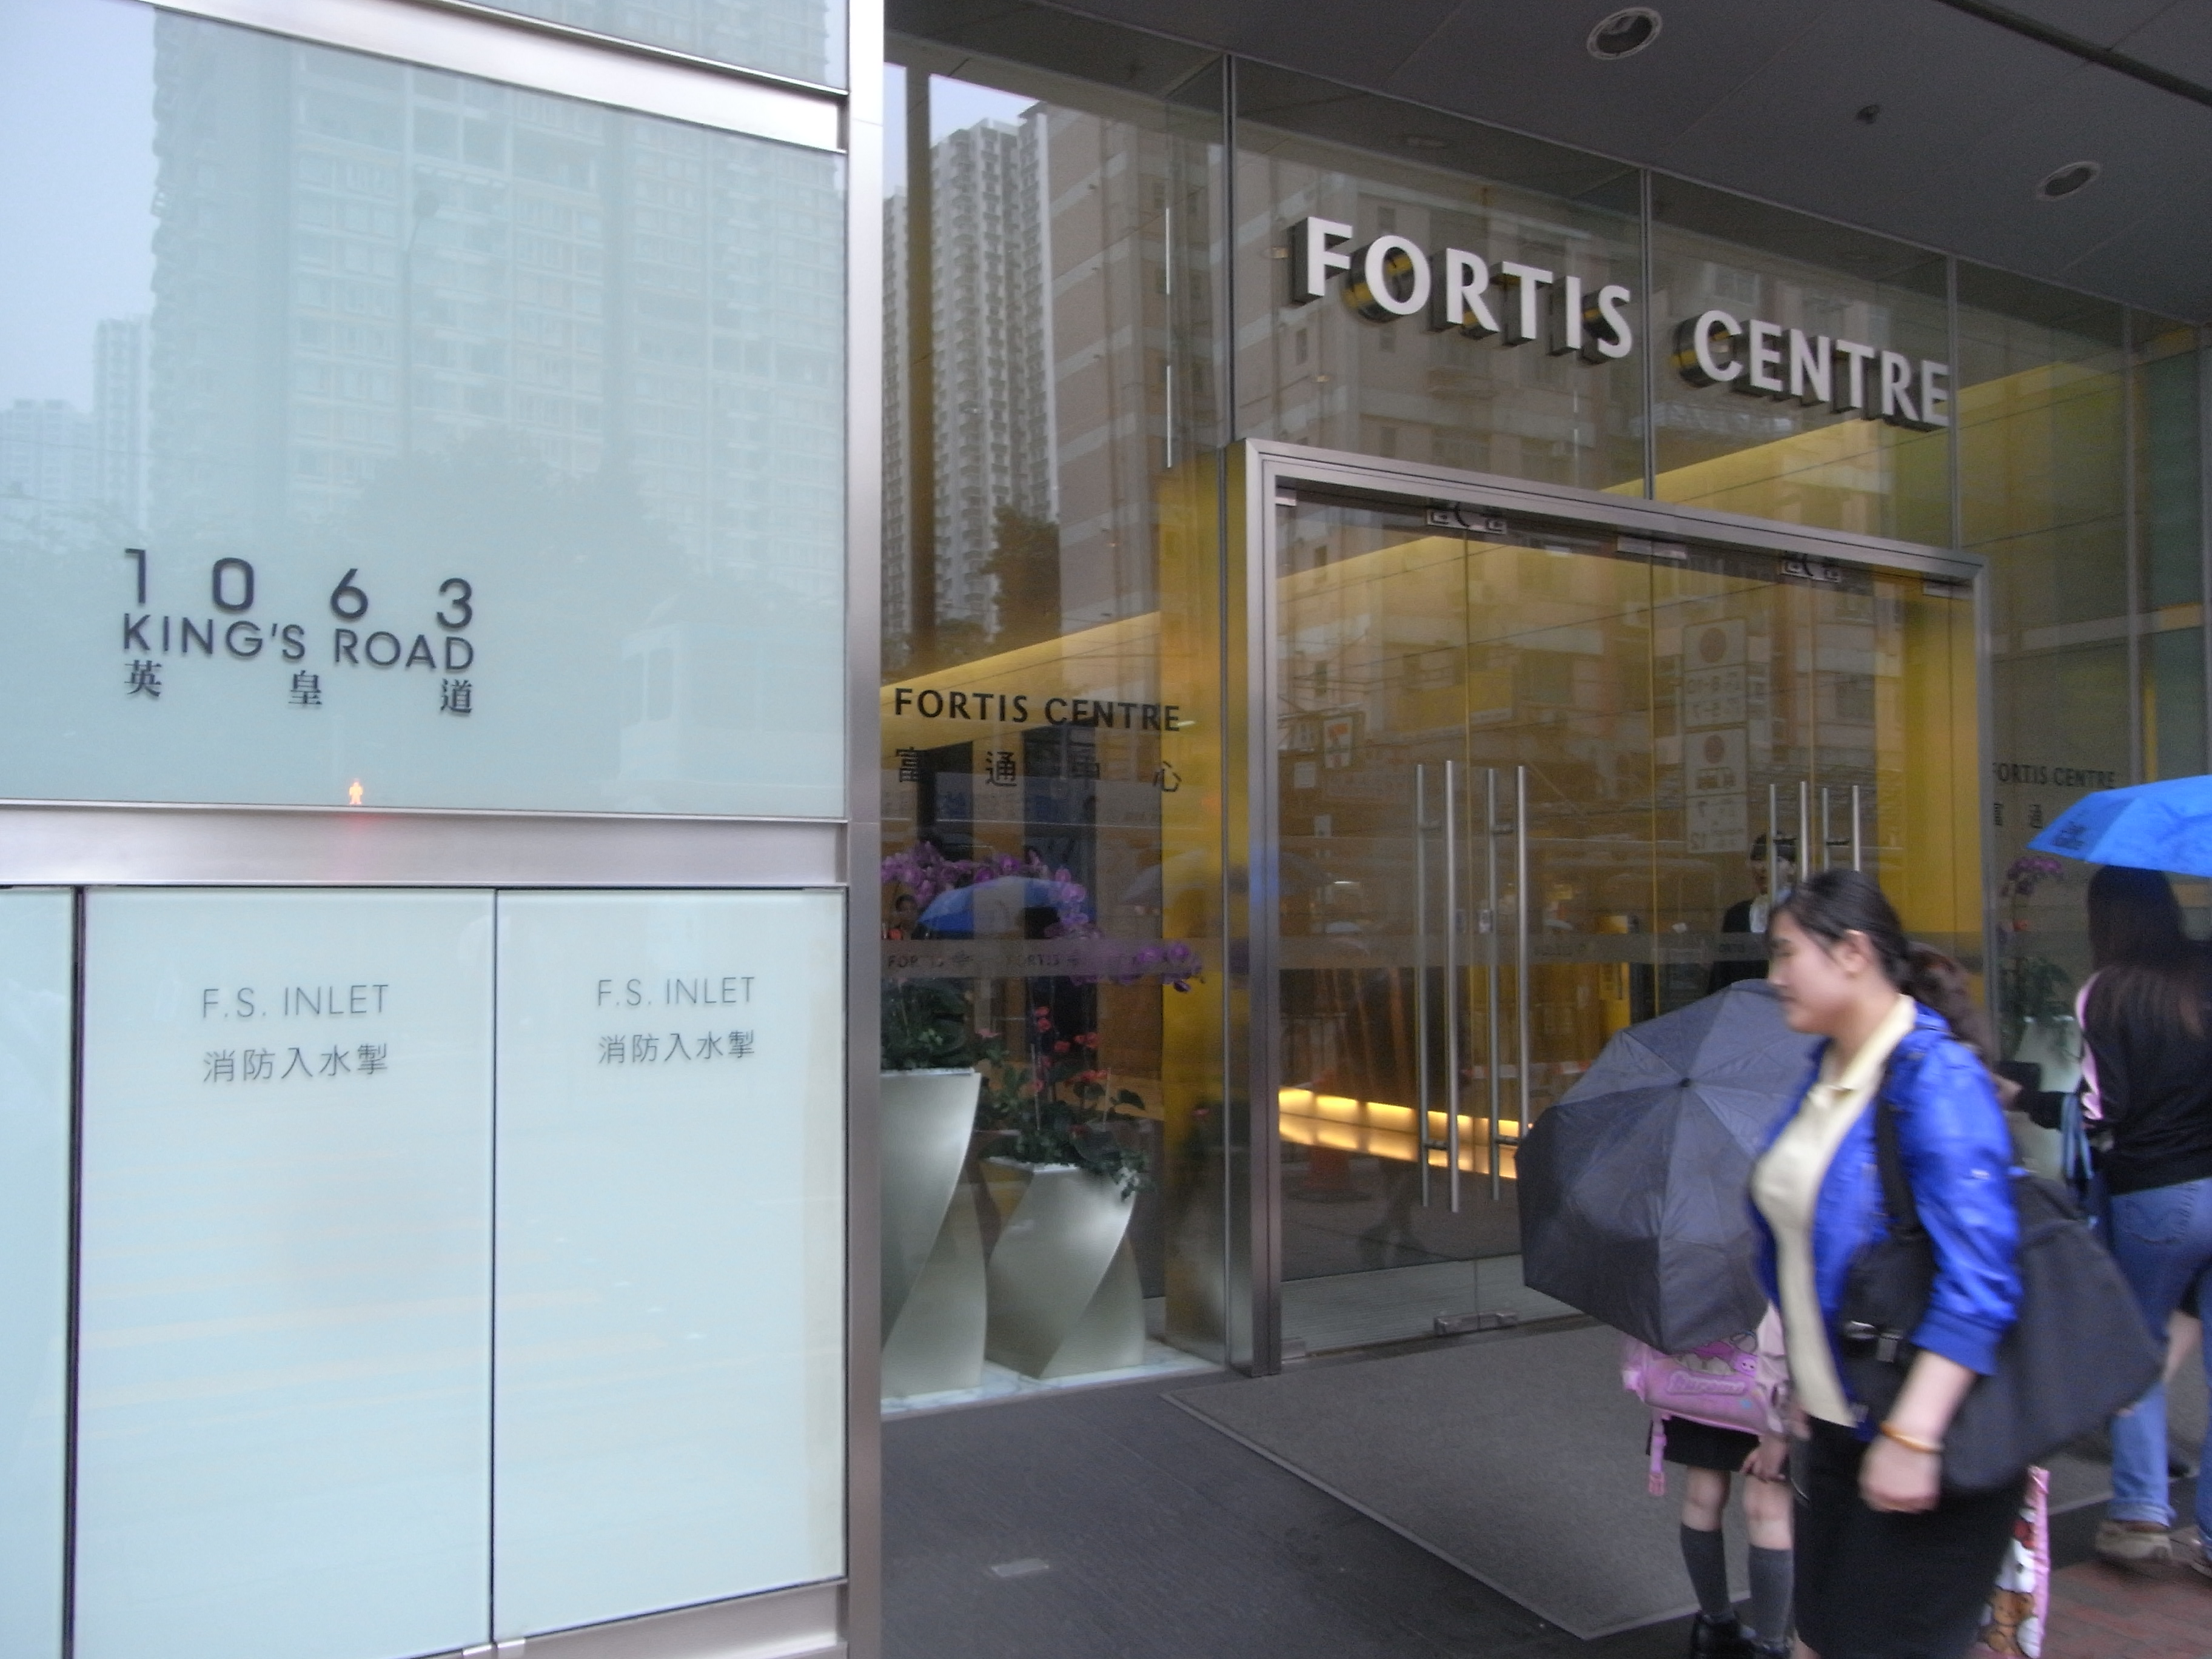 File:HK Quarry Bay 英皇道 King's Road 1063 Fortis Centre 富通中心 Nov